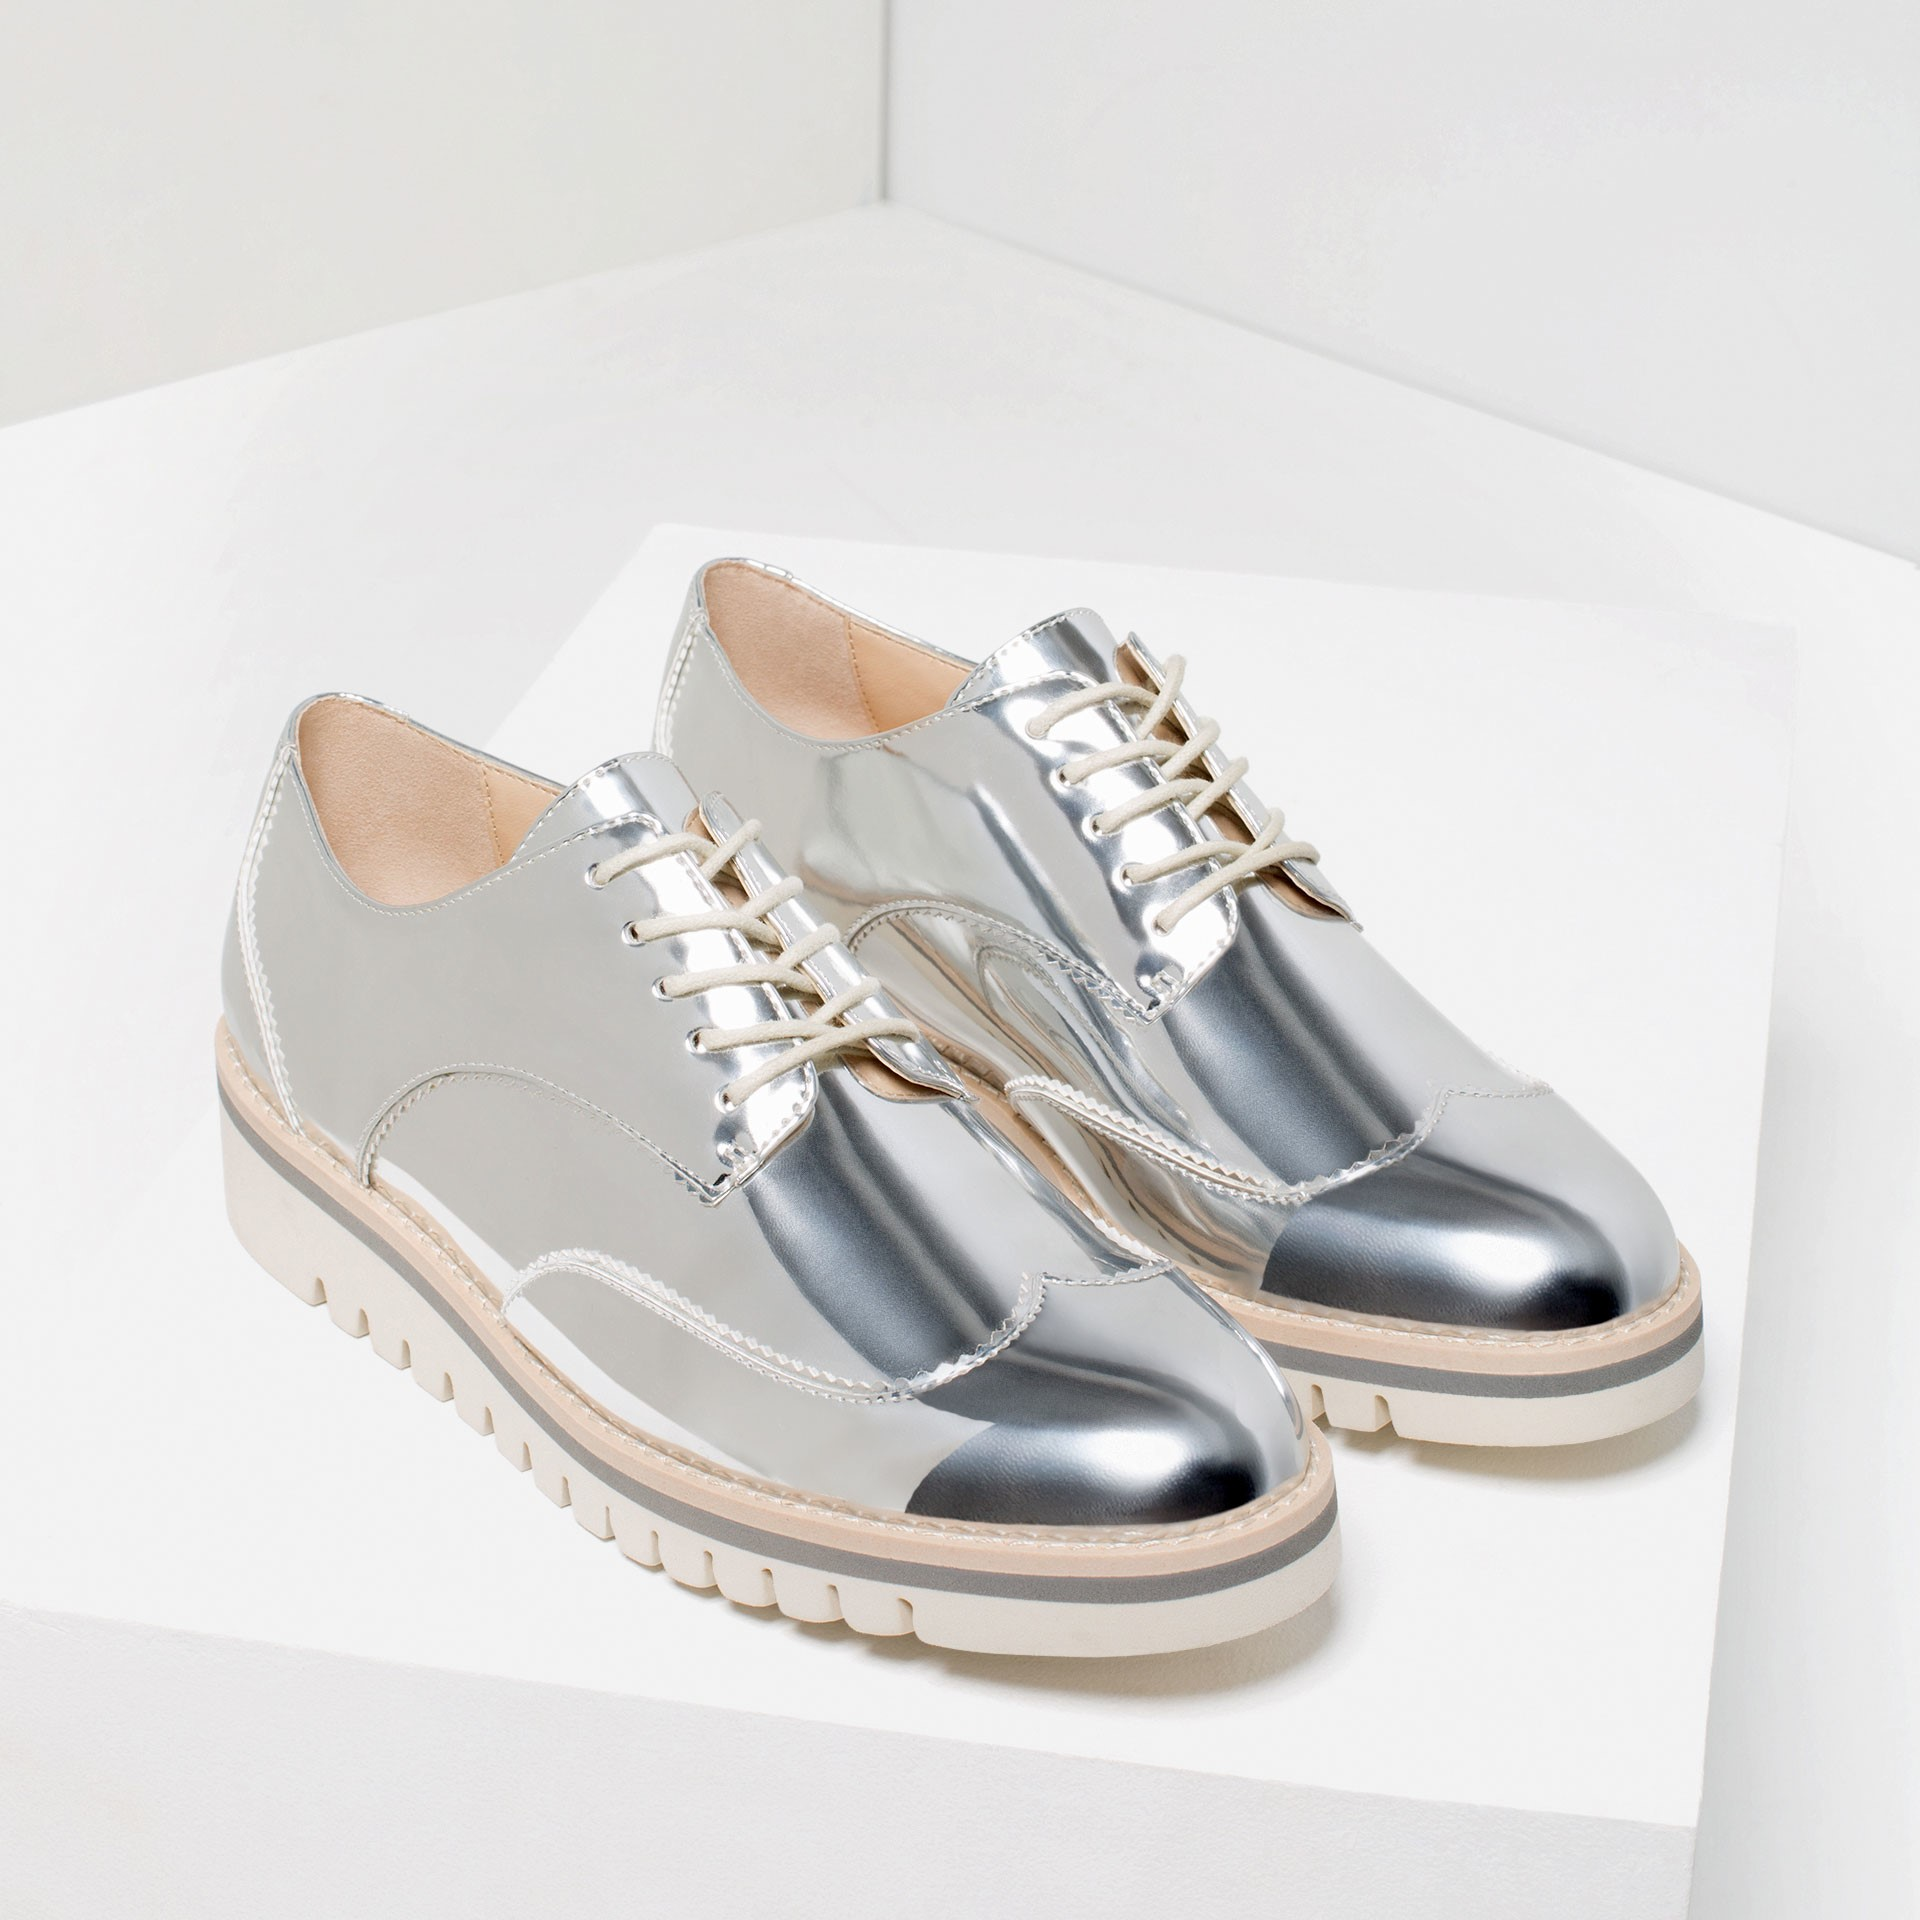 Flat Ballerinas essential shoes - Flat Ballerinas - Essential Shoes Every Women Should Have – 2018